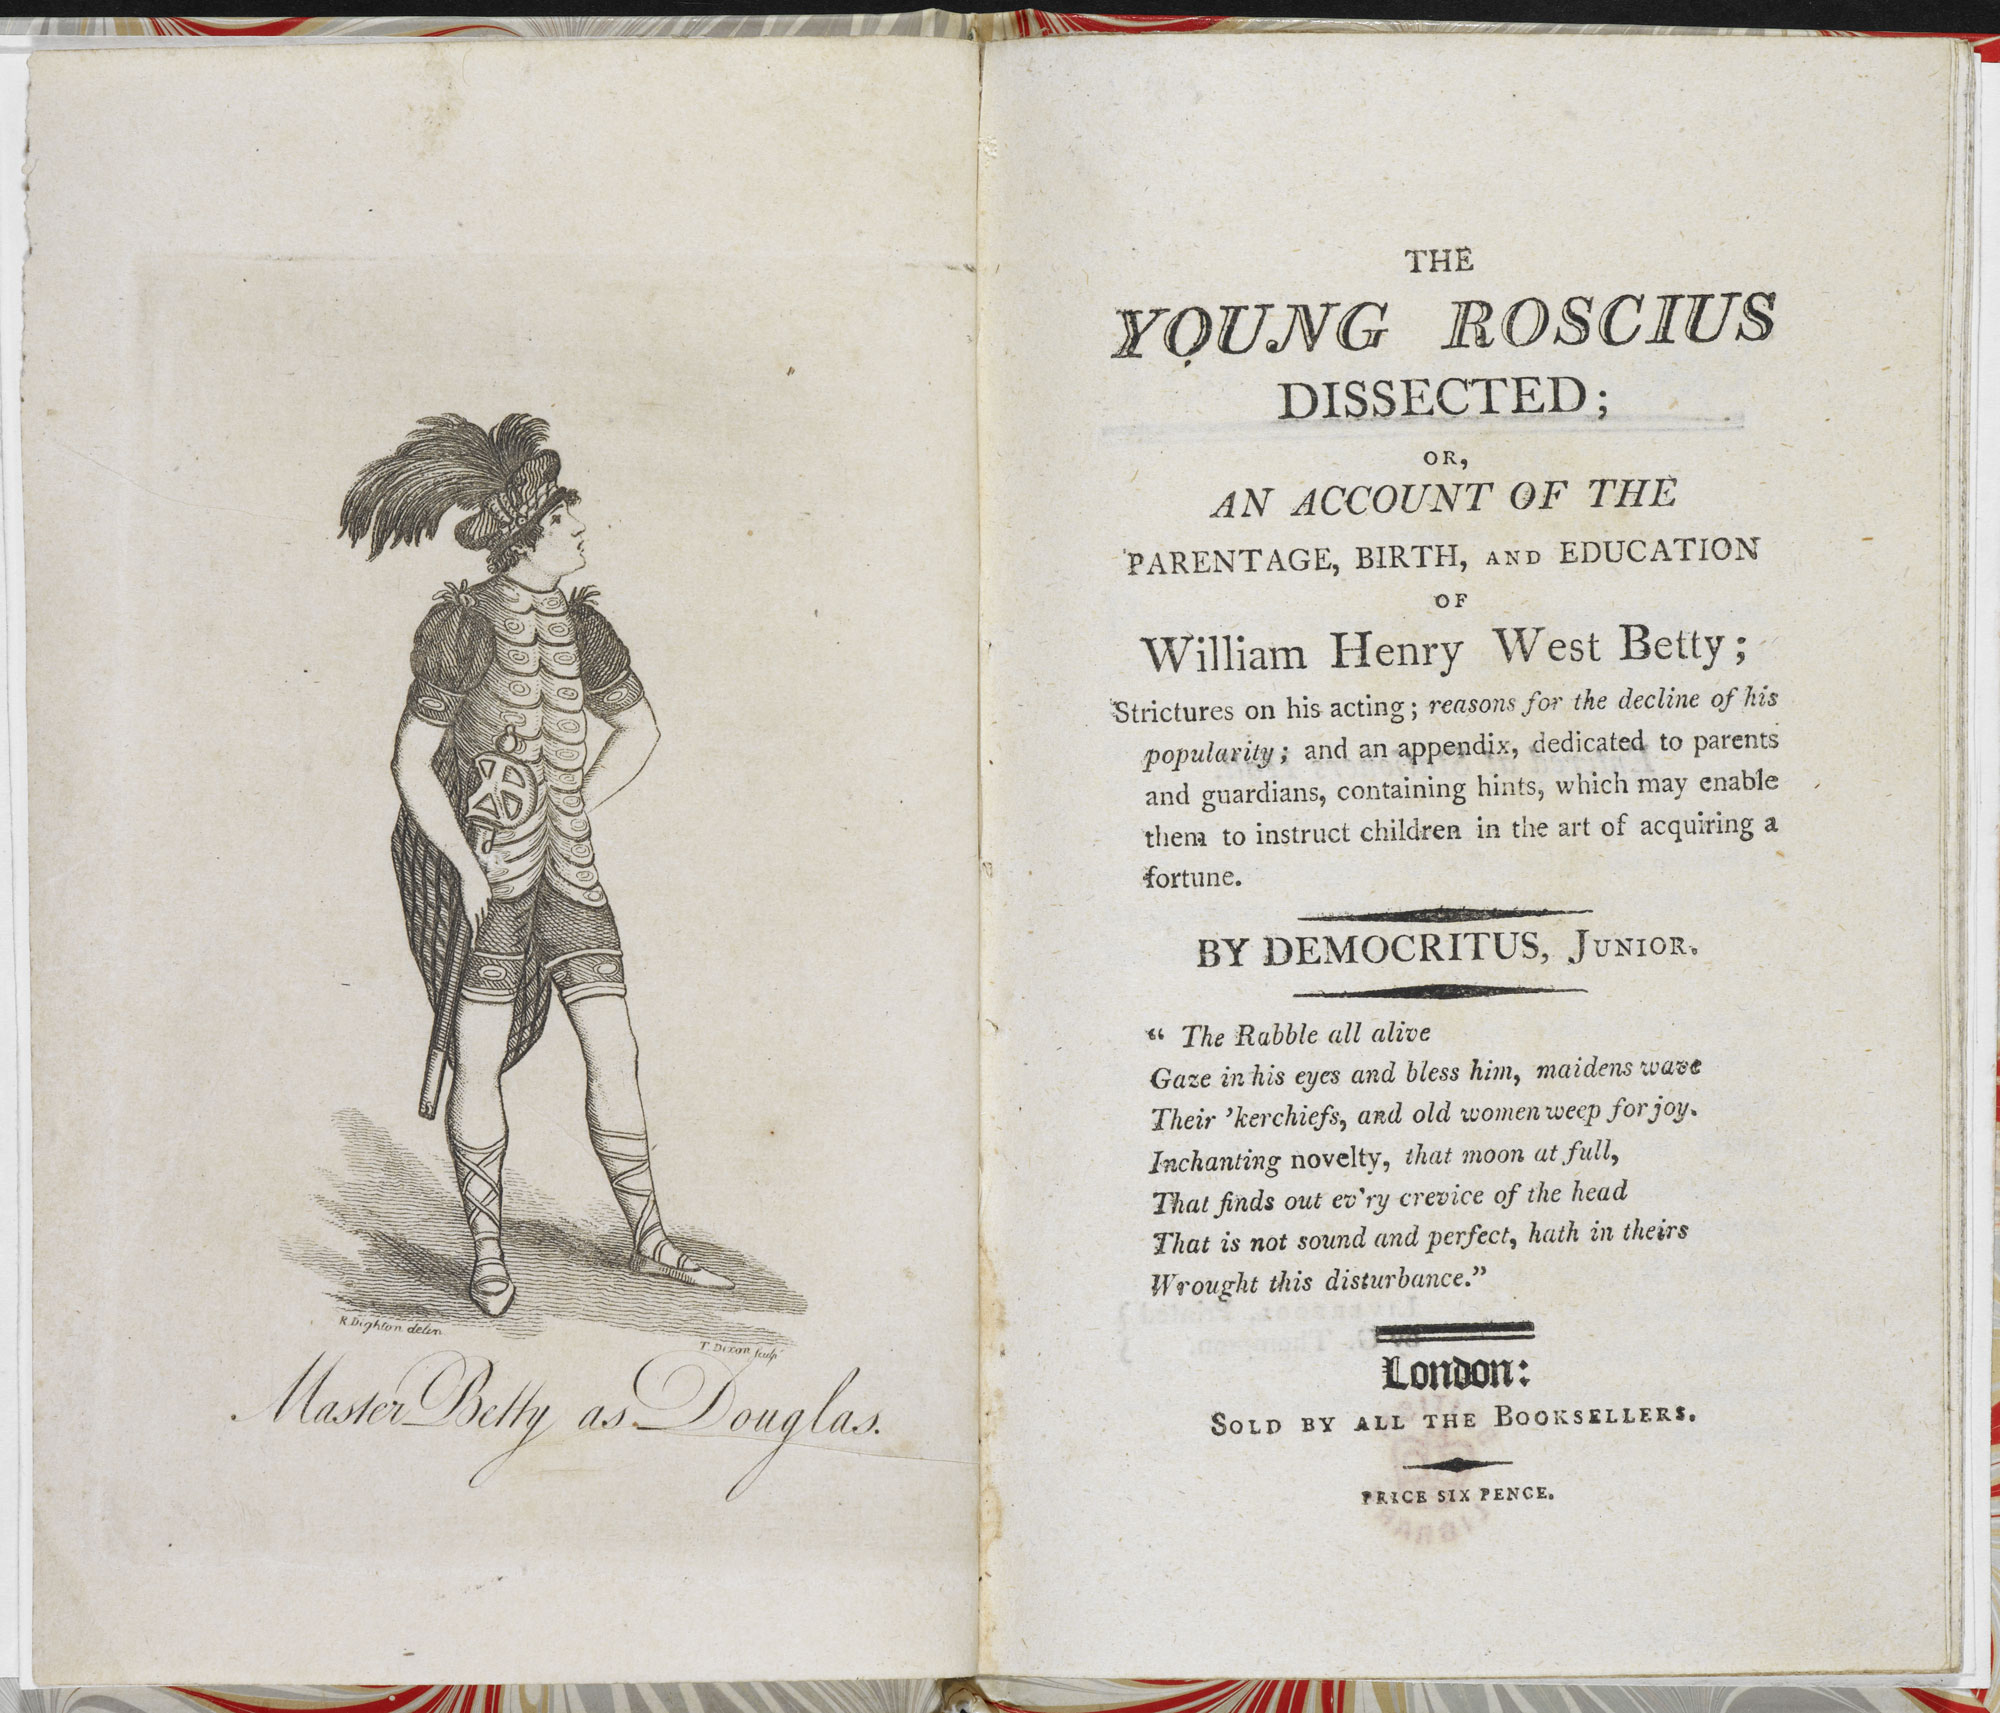 Account of a child actor: The Young Roscius Dissected [page: frontispiece and title page]